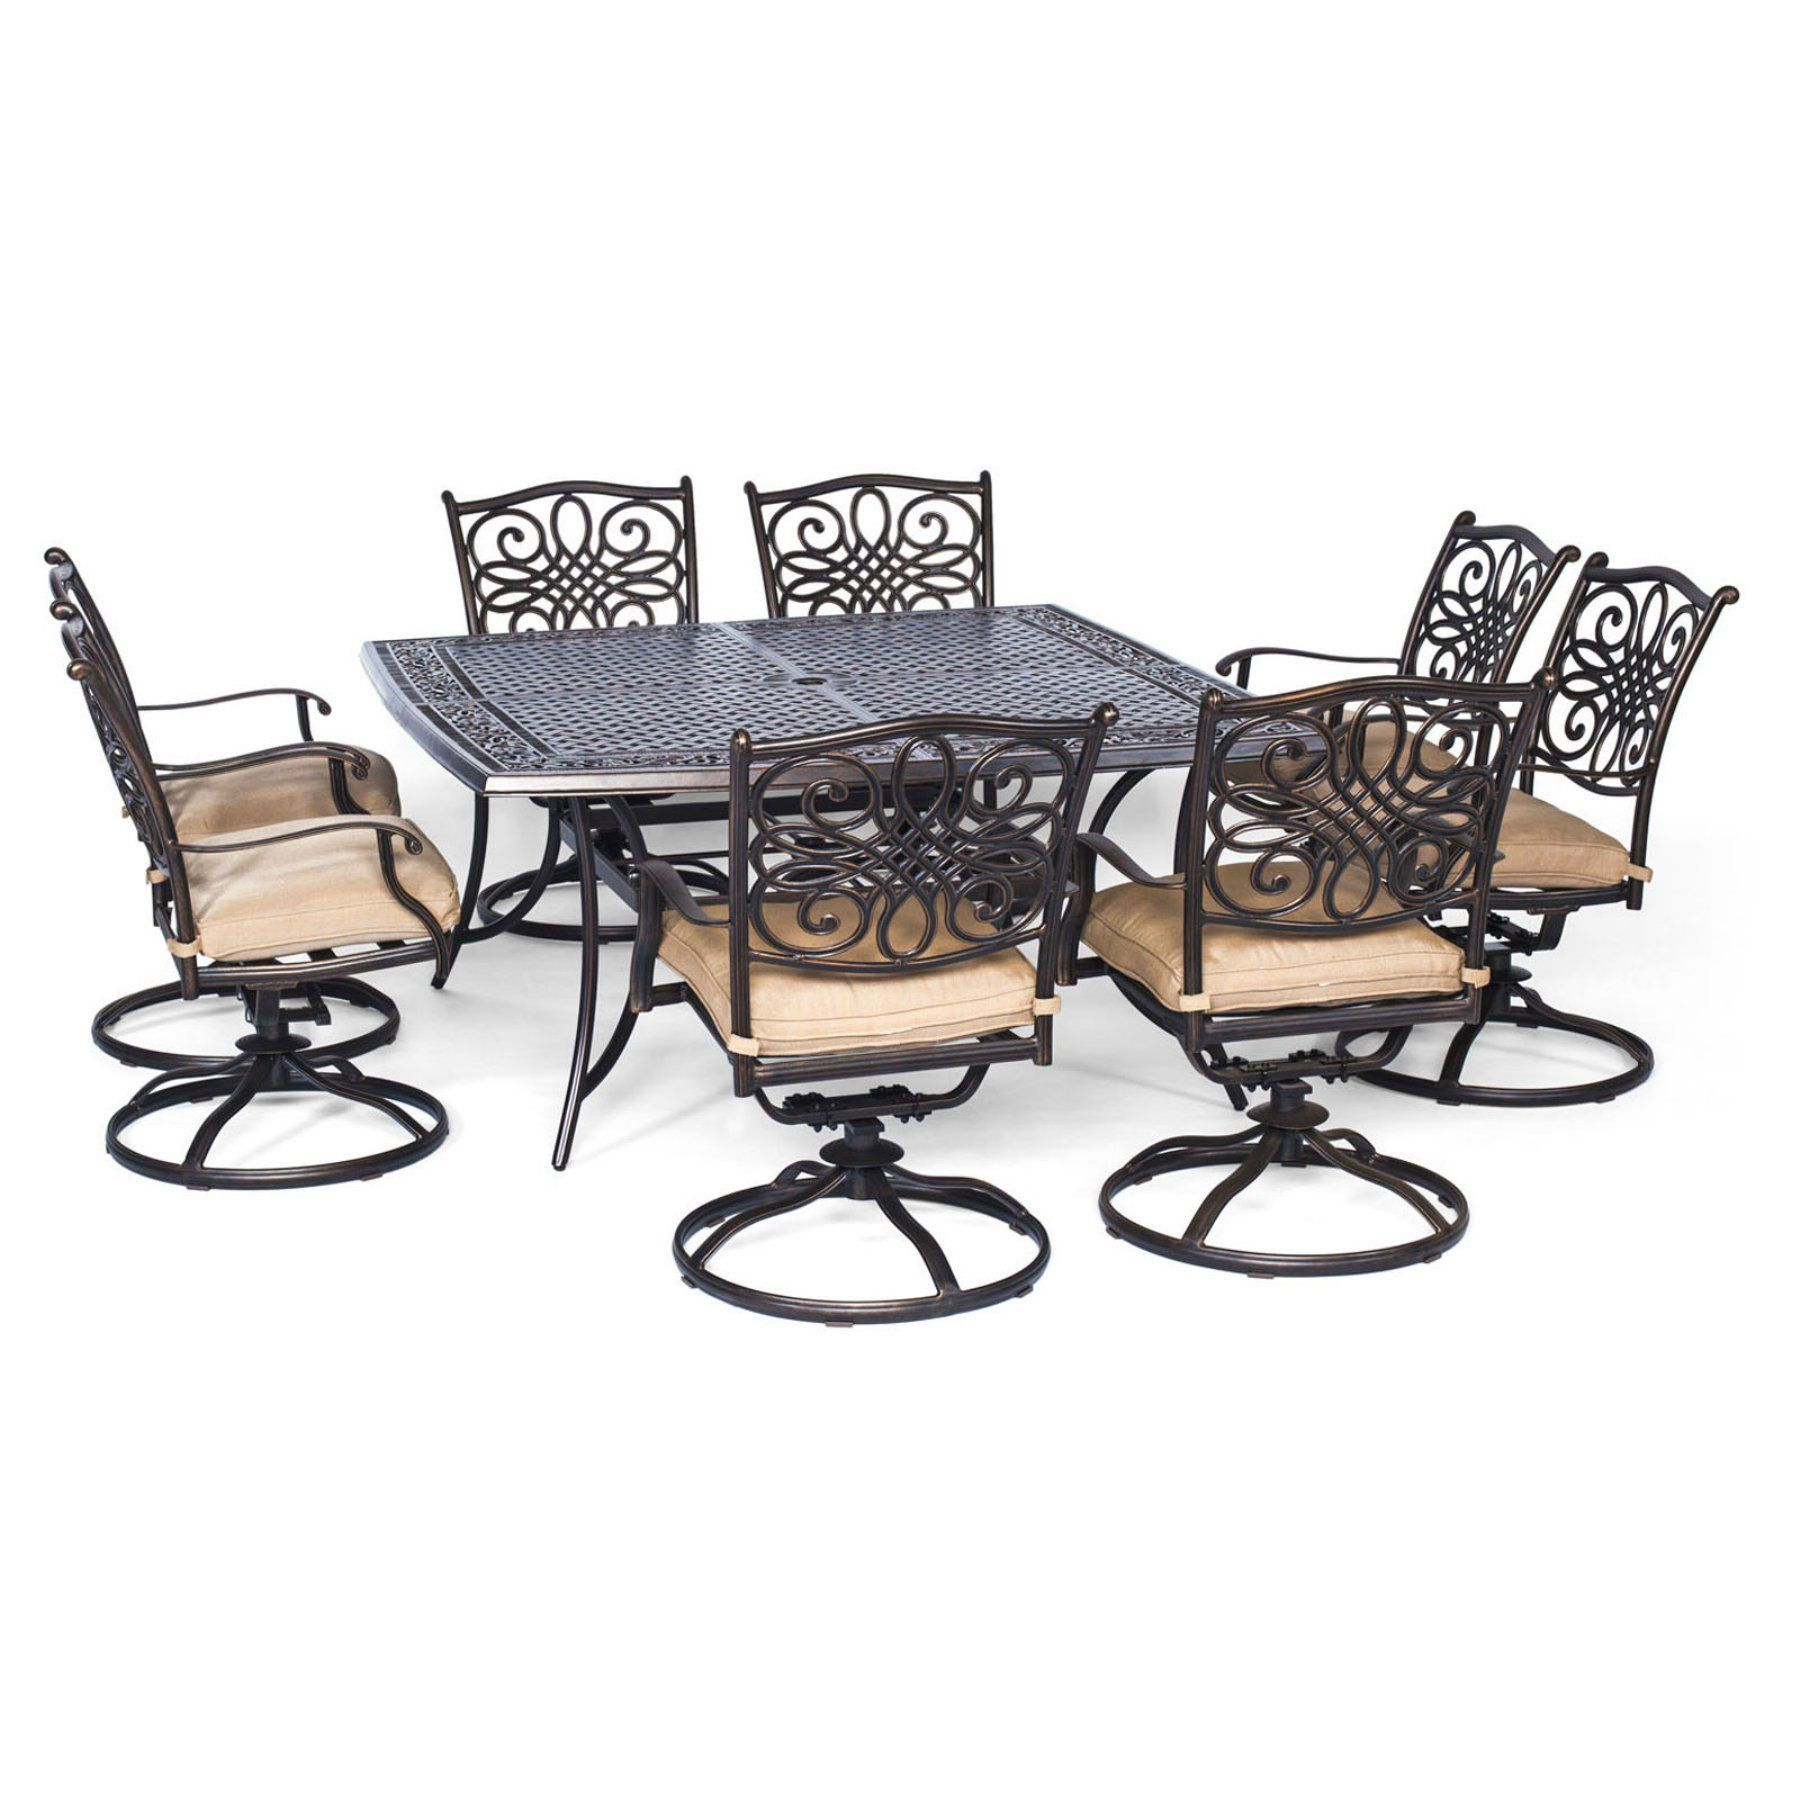 Outdoor hanover traditions aluminum 9 piece square patio dining set traddn9pcsq